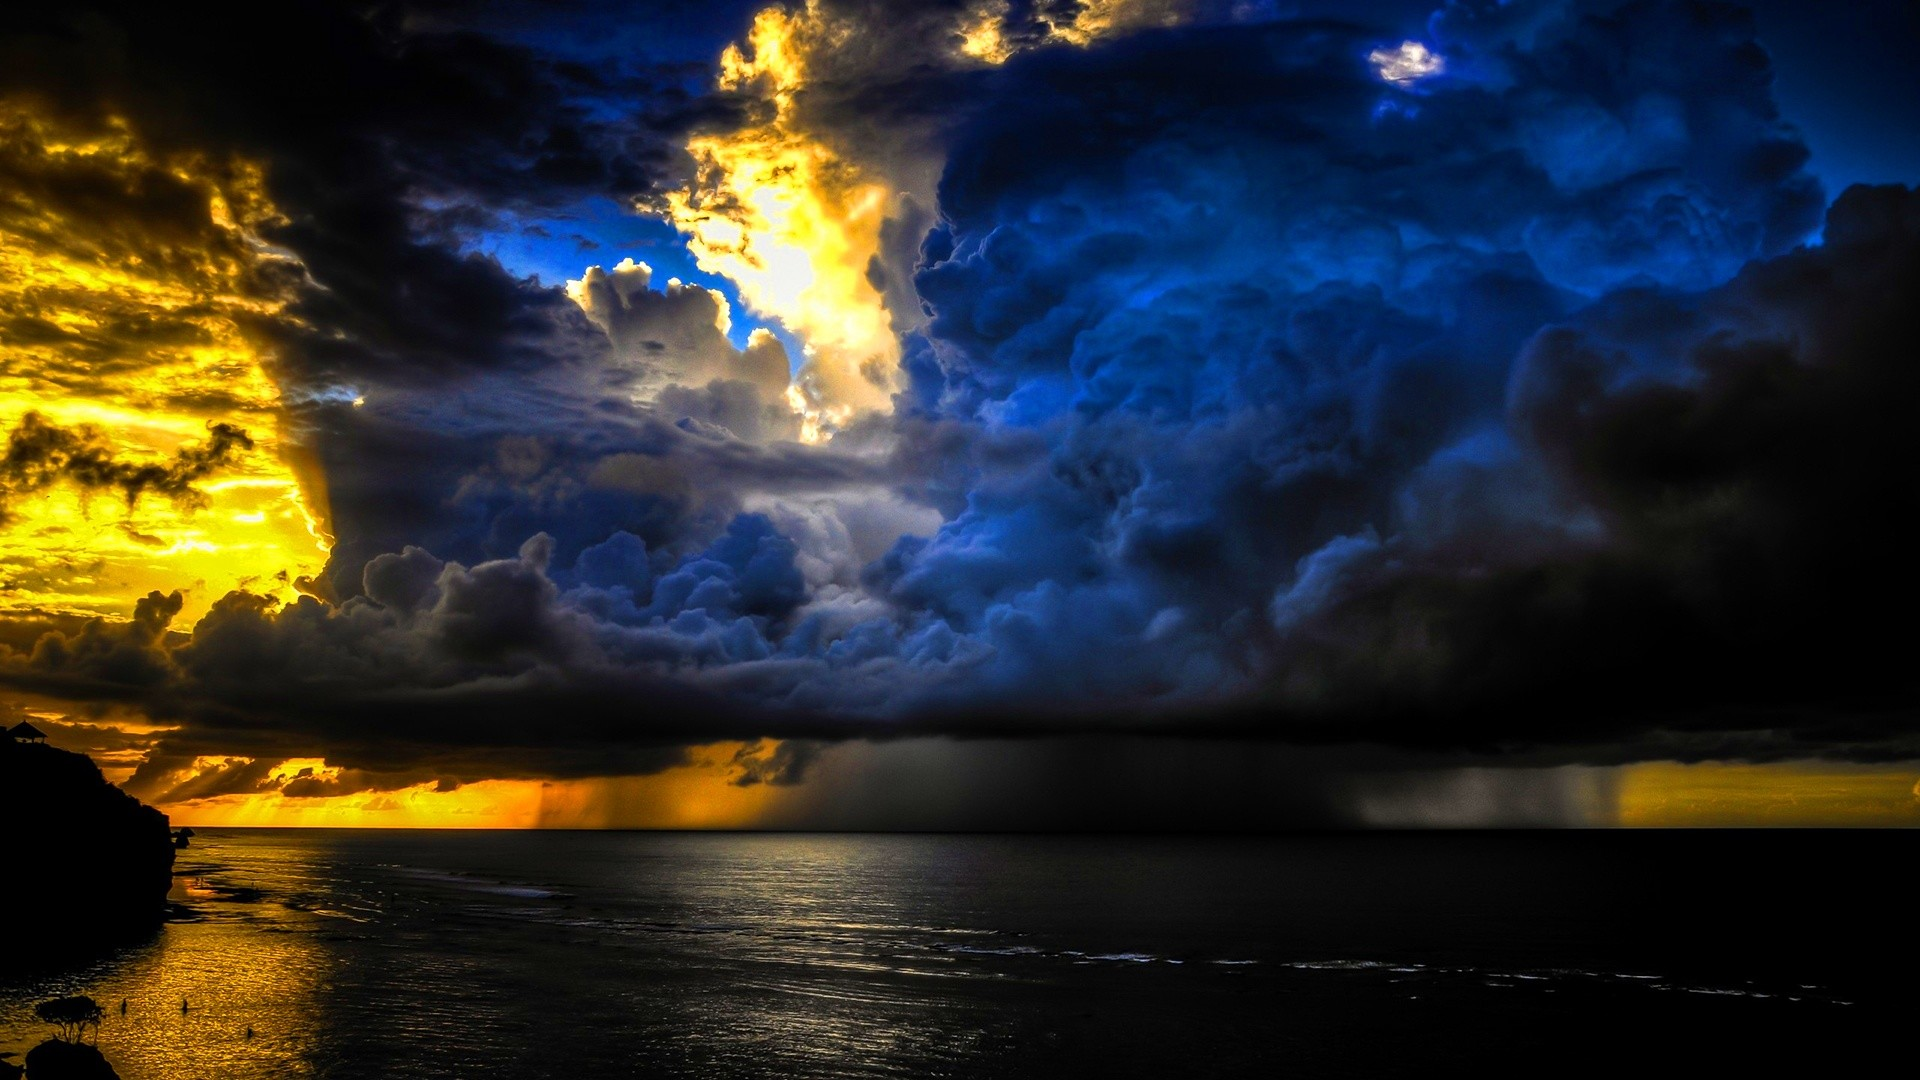 1920x1080 Storm Full HD Wallpaper - Wallpaper, High Definition, High Quality .